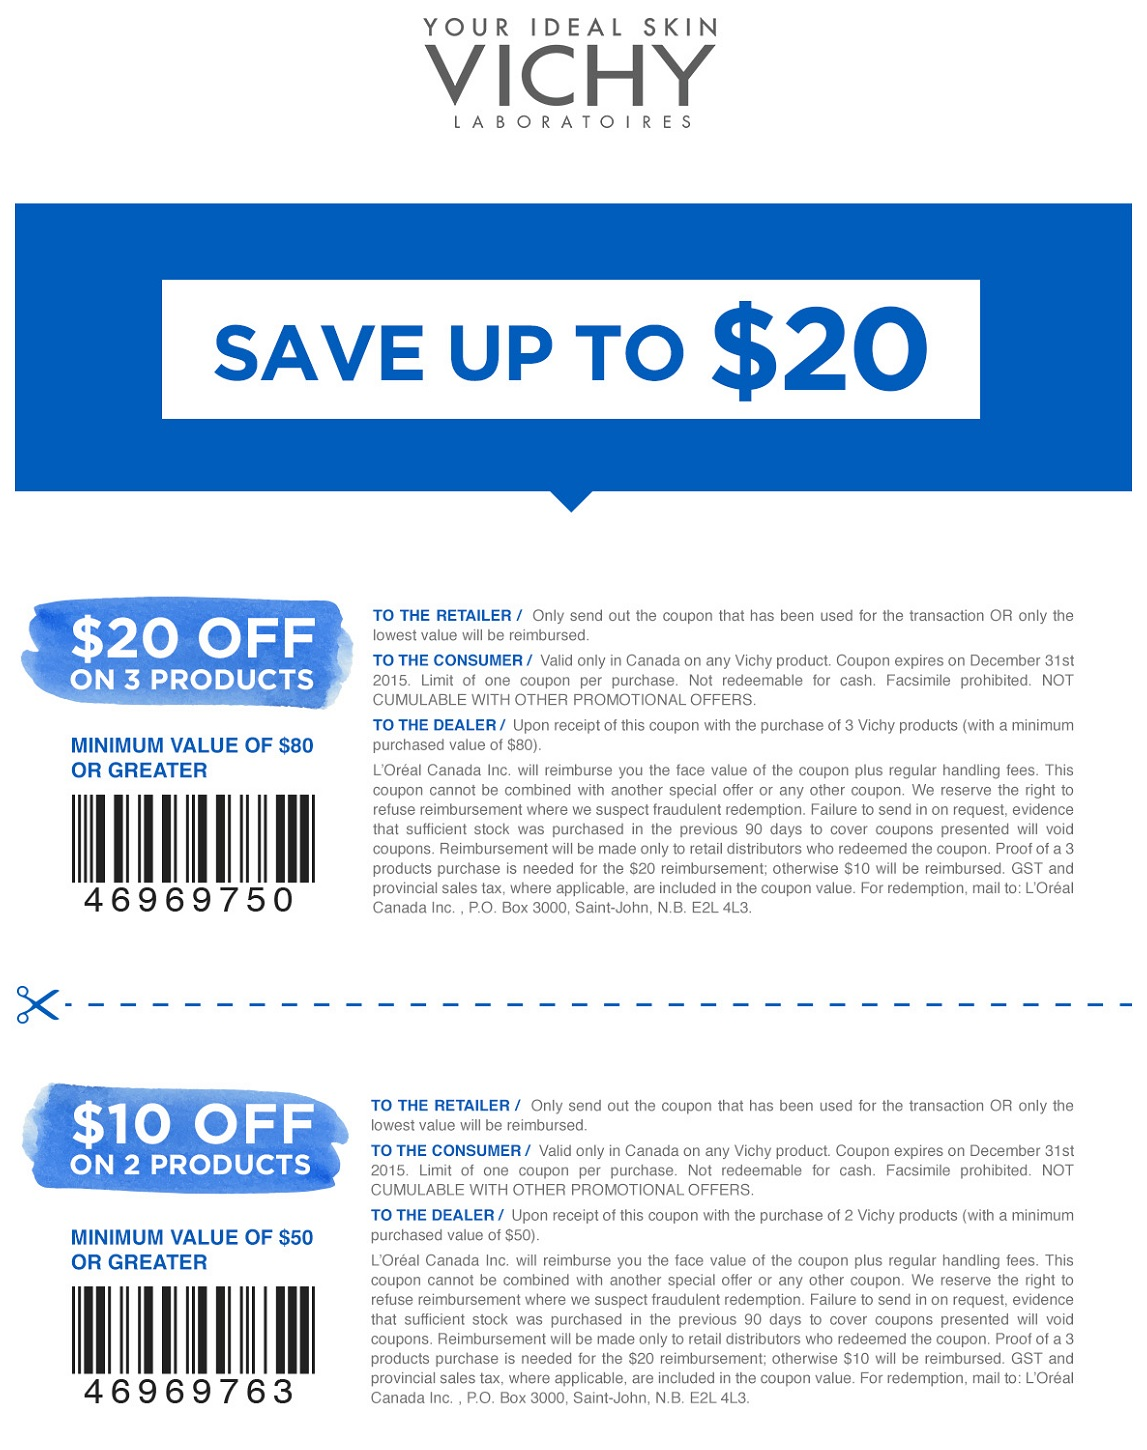 photo regarding Vichy Coupon Printable named Vichy - Info